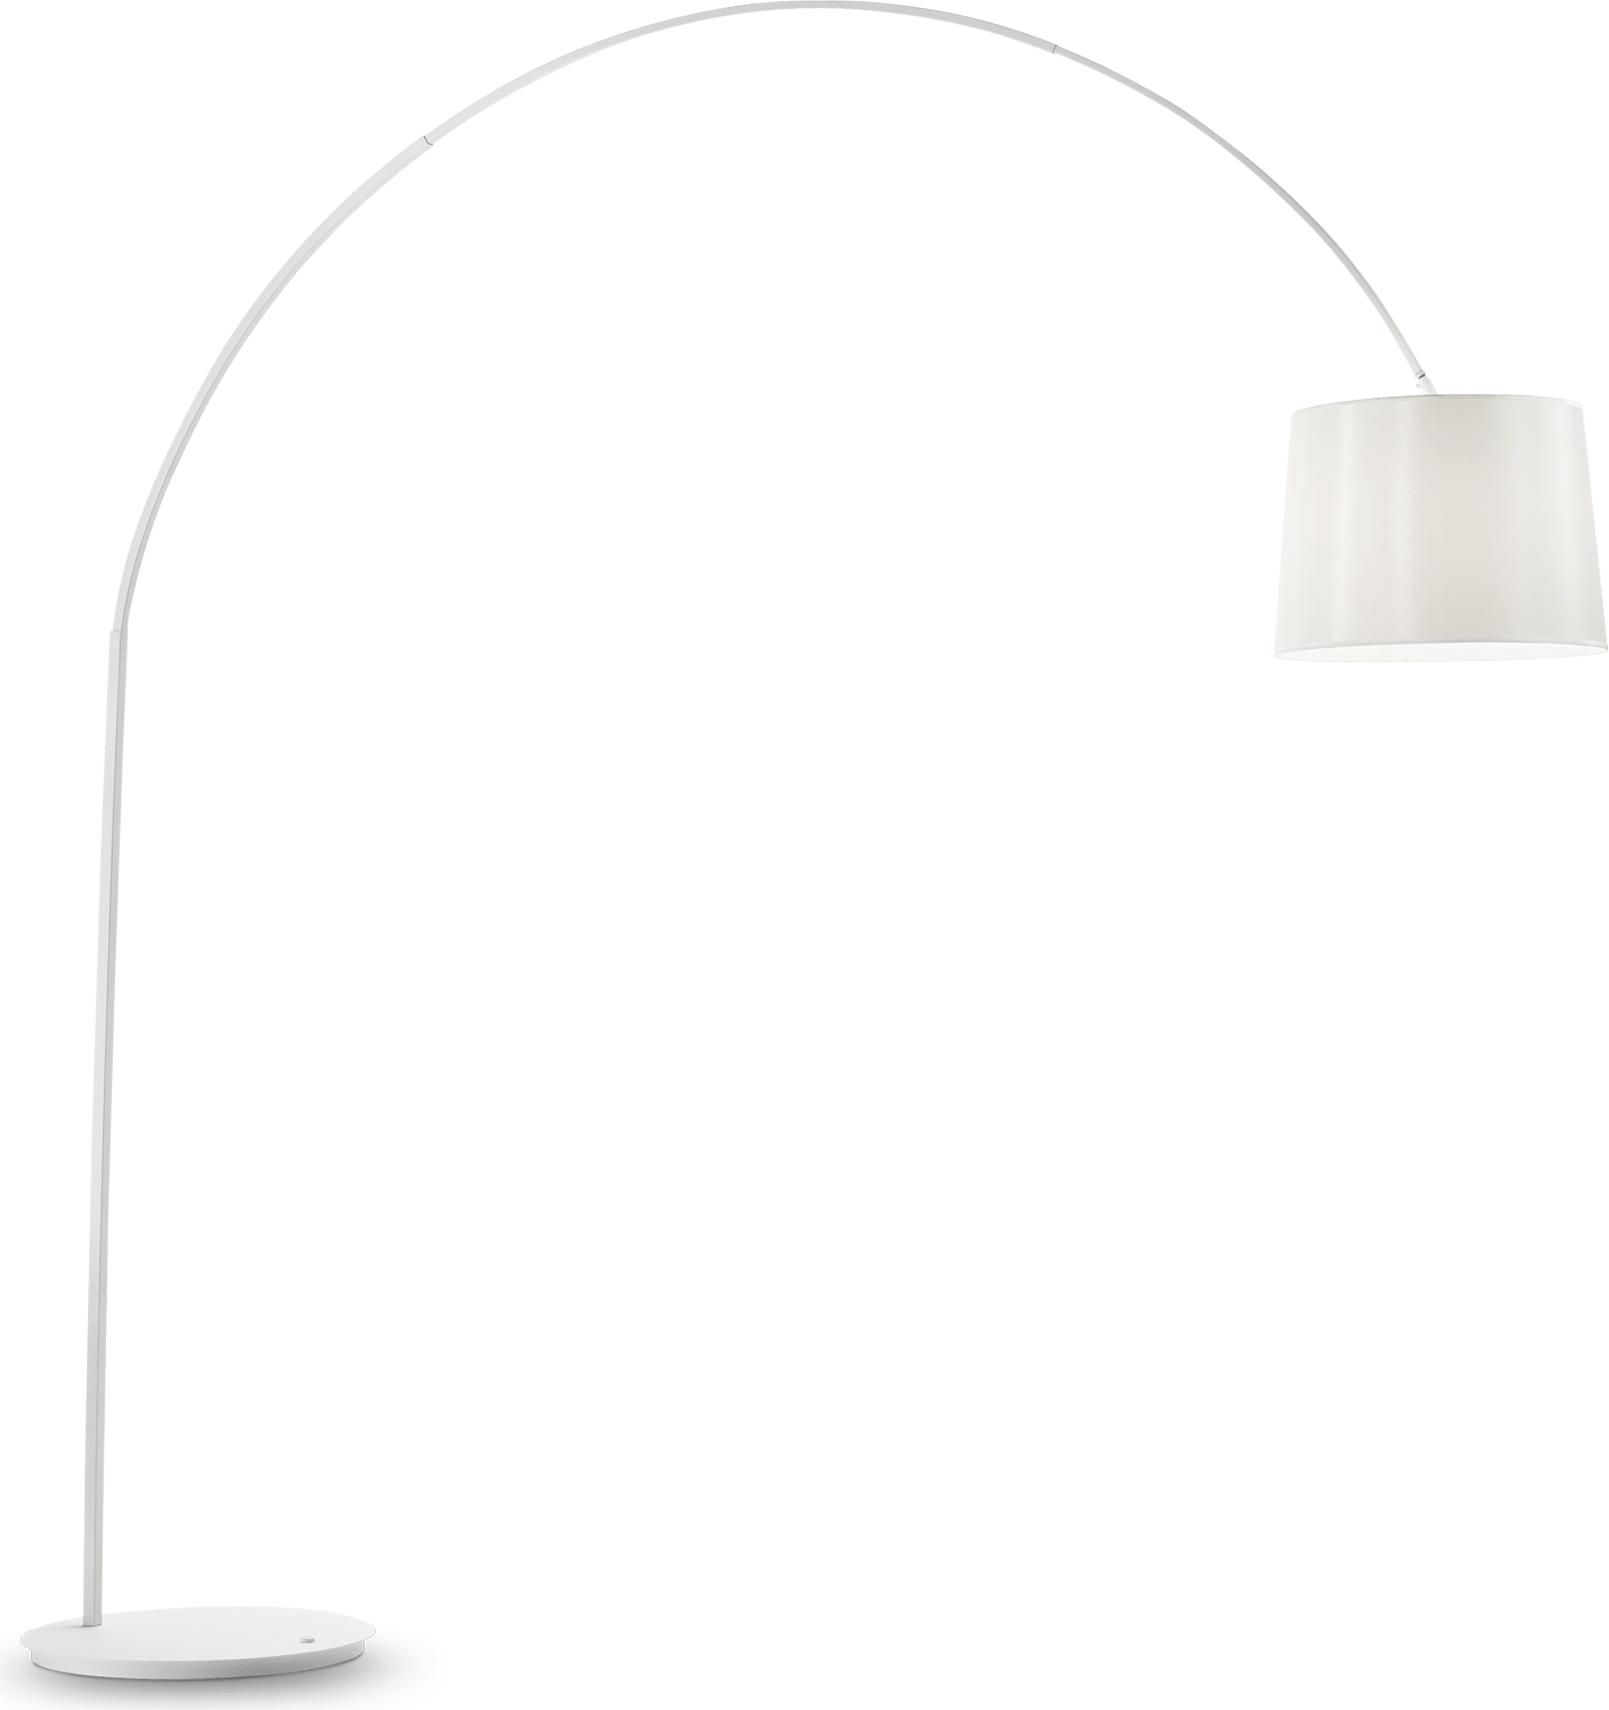 Ideal lux LED Dorsale total weiss Lampe stehende 5W 95127